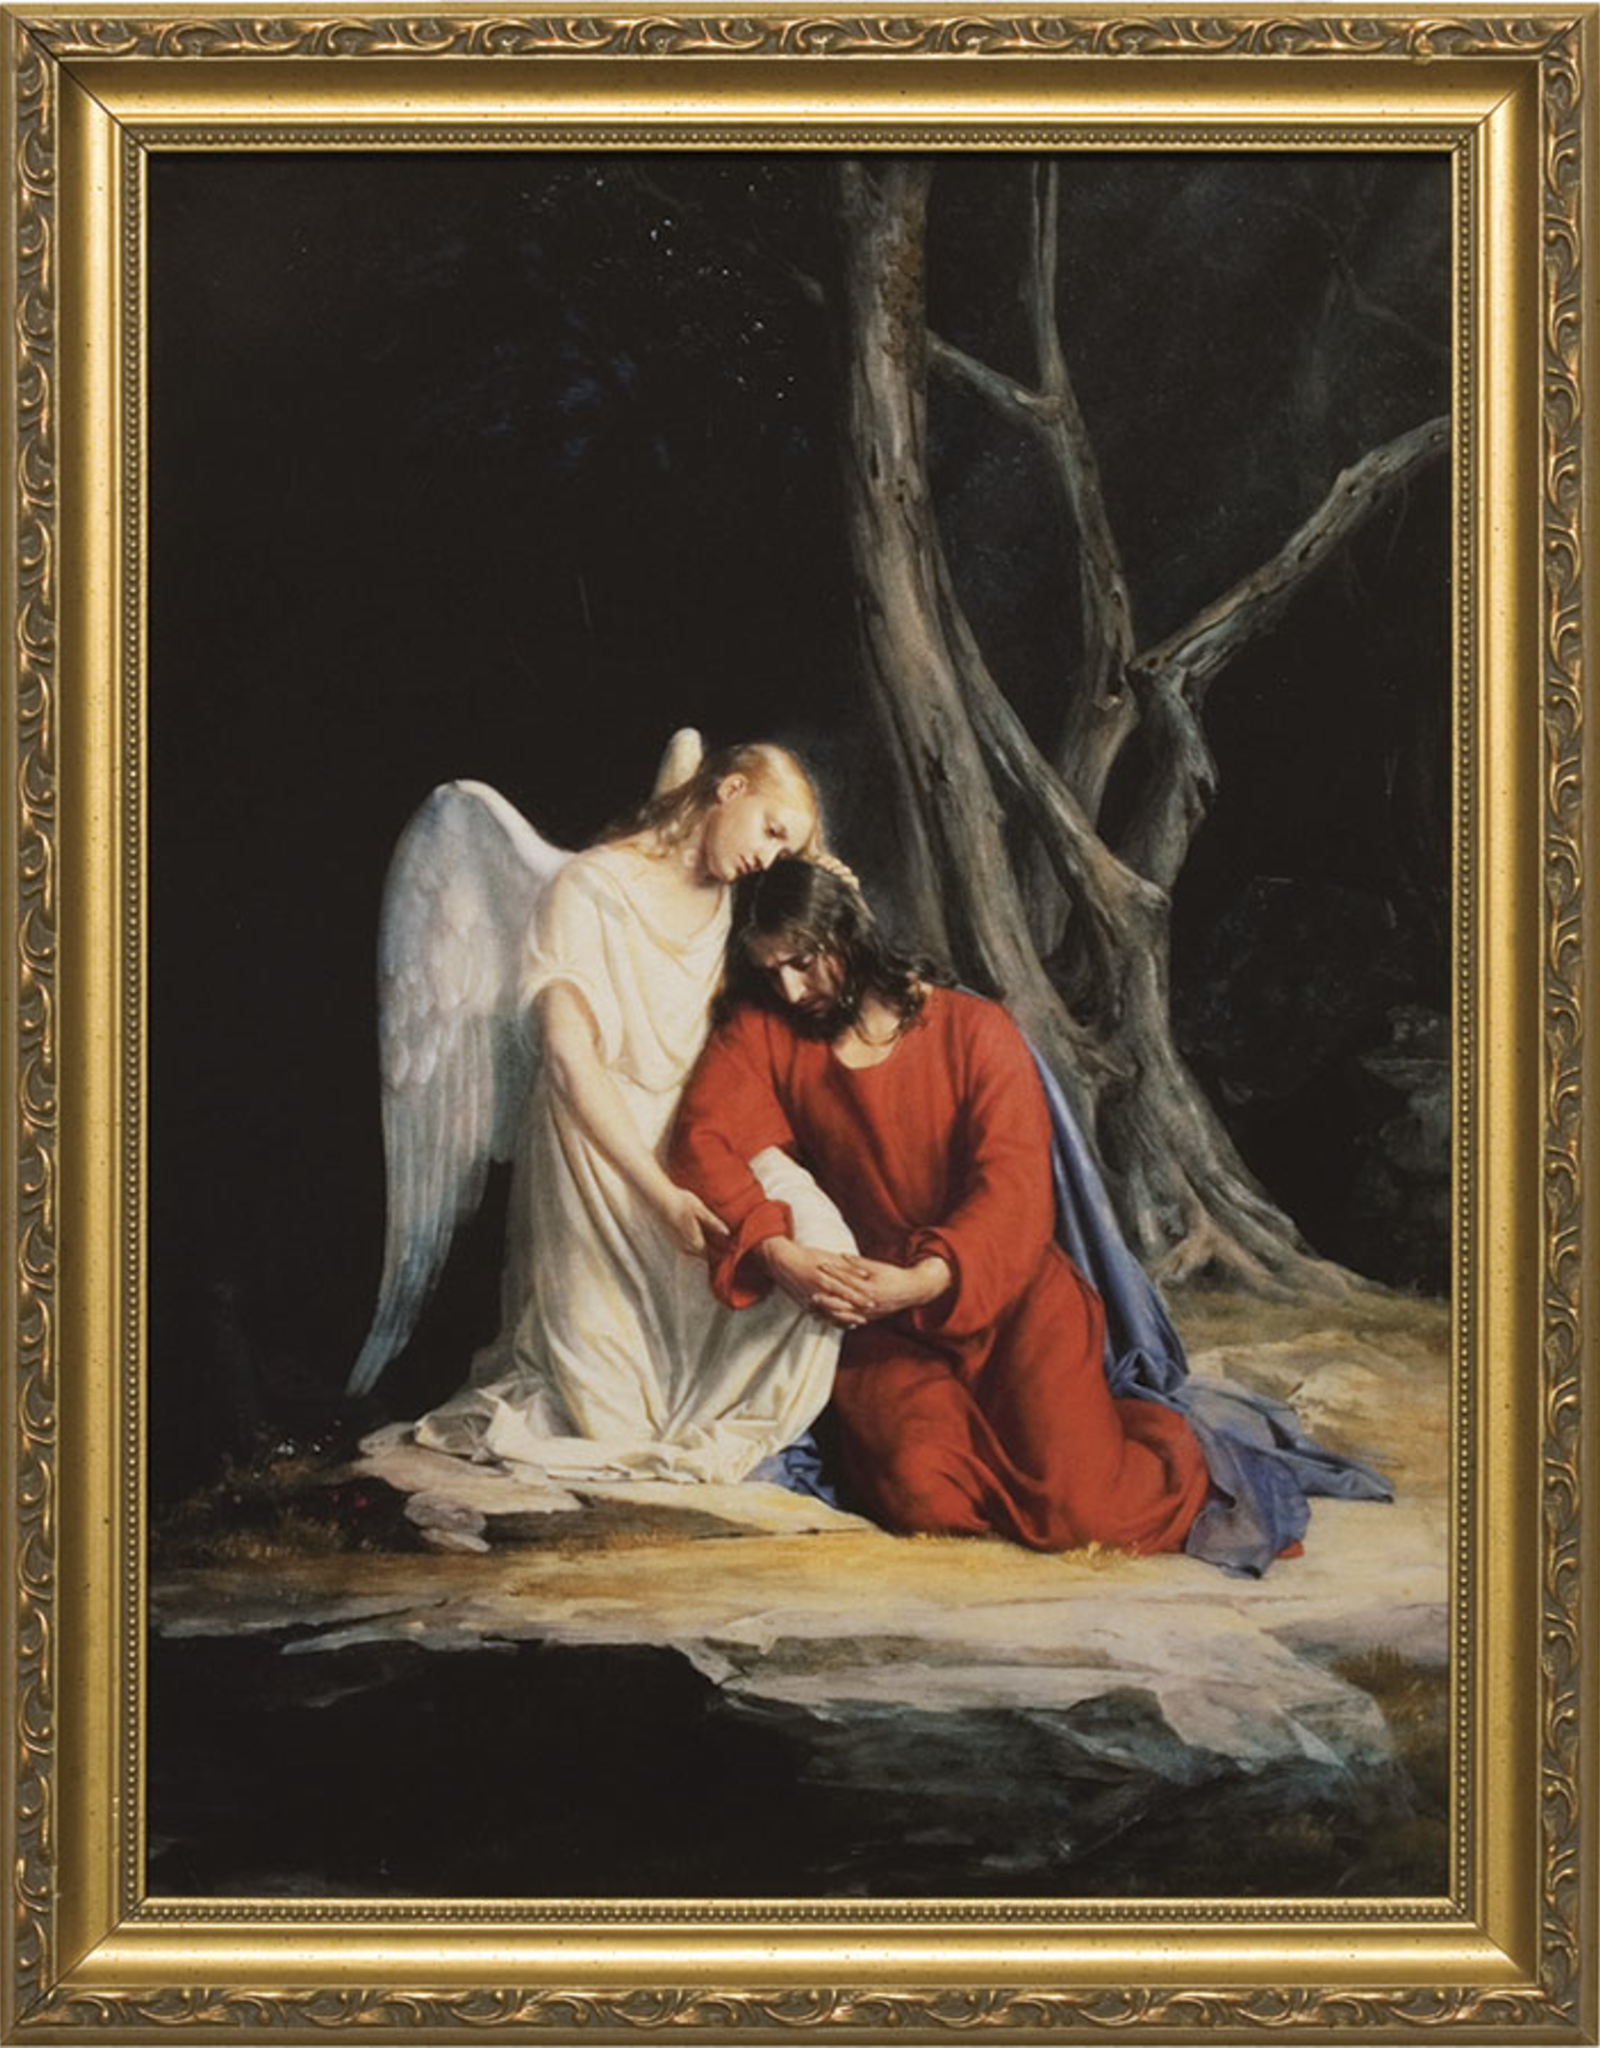 """Nelson/Catholic to the Max Gethsemane Framed Image in  Gold Frame 8 x 10"""""""